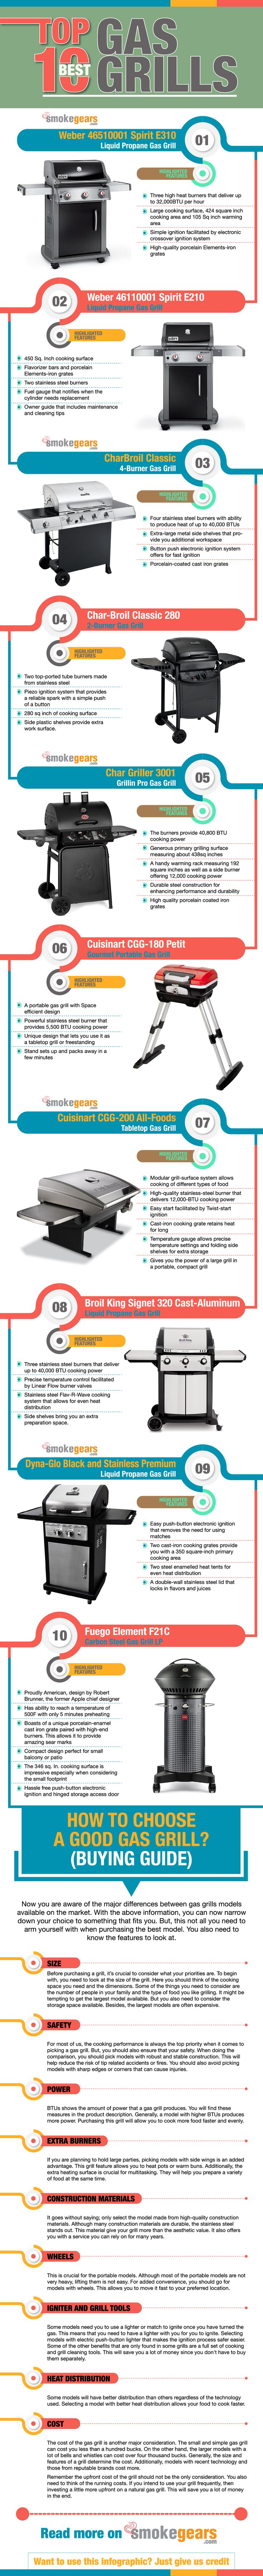 #GasGrill #GasSmoker #BBQ #Grill #Grilling Top 10 Best Gas Grill Infographic Design  Our Best Choice Gas Grills Smokers: 	 1 Weber 46510001 Spirit E310 Liquid Propane Gas Grill 2. Weber 46110001 Spirit E210 Liquid Propane Gas Grill 3. CharBroil Classic 4-Burner Gas Grill 4. Char-Broil Classic 280 2-Burner Gas Grill 5. Char-Griller 3001 Grillin Pro Gas Grill 6. Cuisinart CGG-180 Petit Gourmet Portable Gas Grill 7. Cuisinart CGG-200 All-Foods 12,000-BTU Tabletop Gas Grill